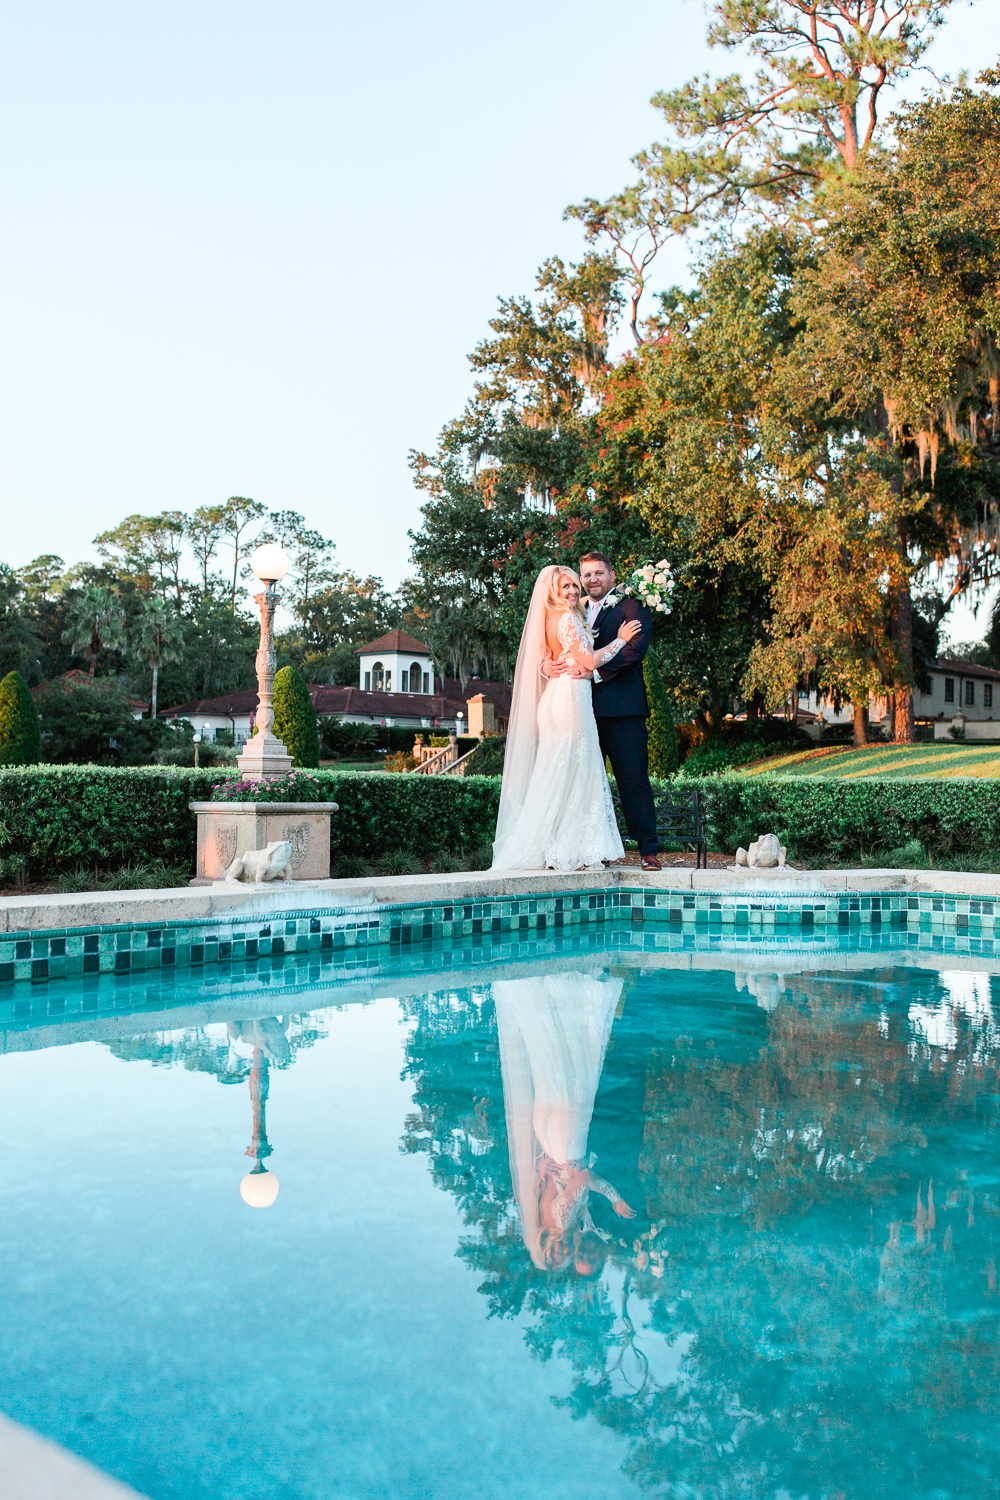 Bride and groom posing ideas - pool reflecting the newlyweds